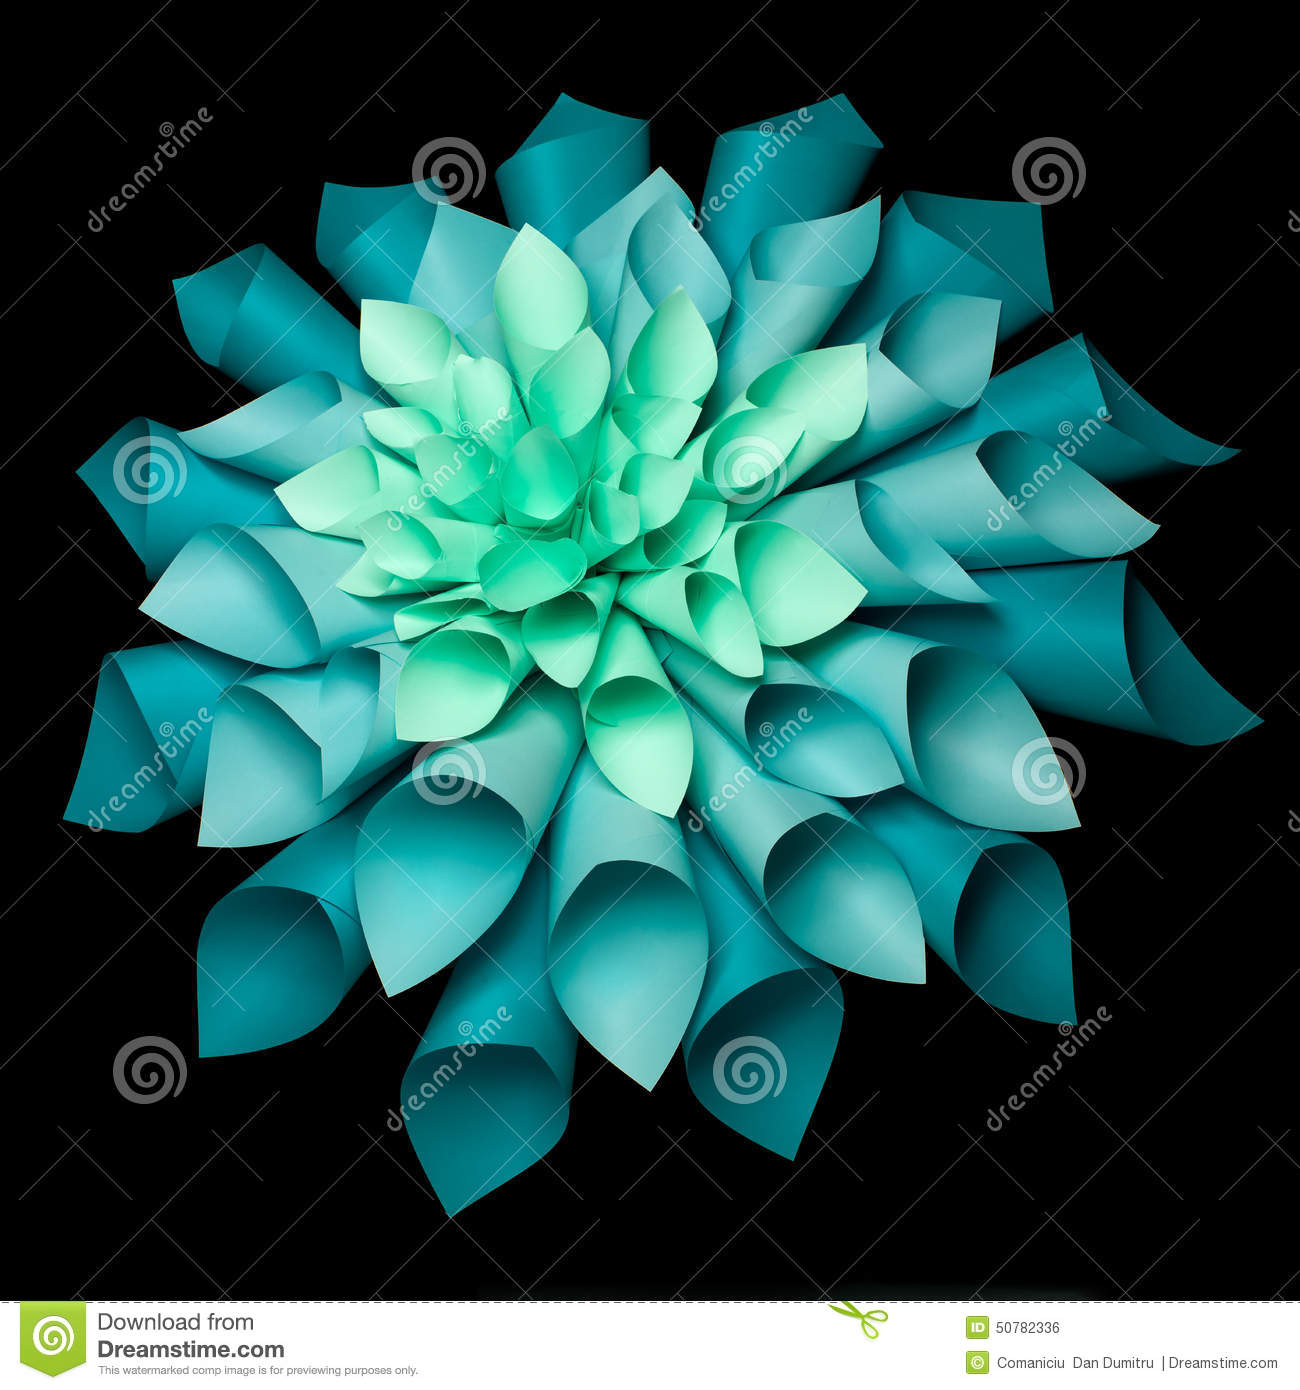 flower background with structure - photo #6